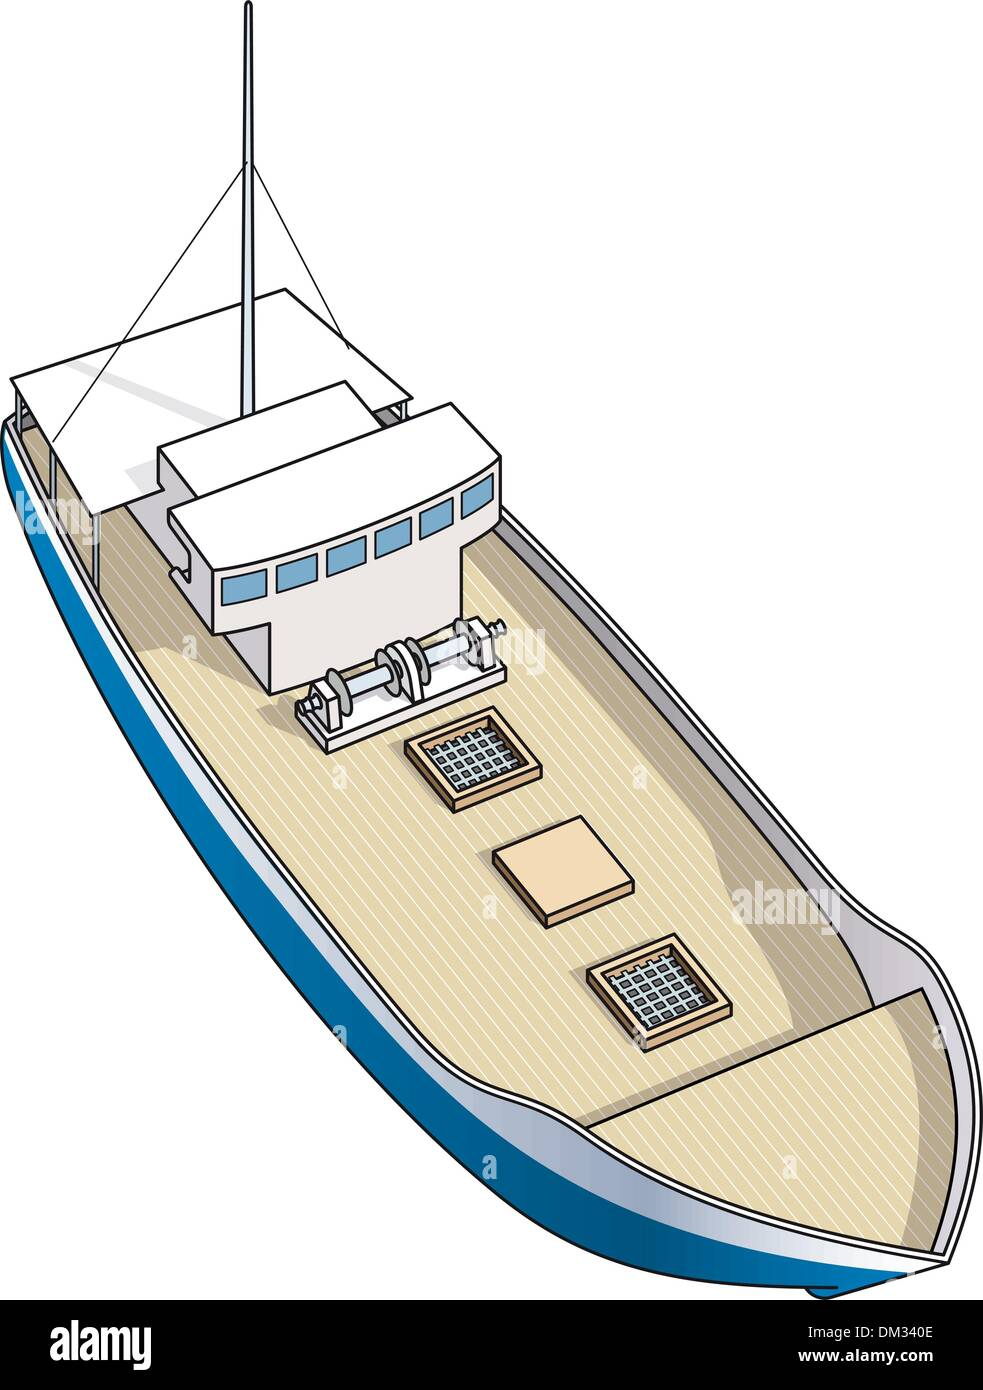 Isometric drawing of fisher boat and trawler for spiny lobster - Stock Image